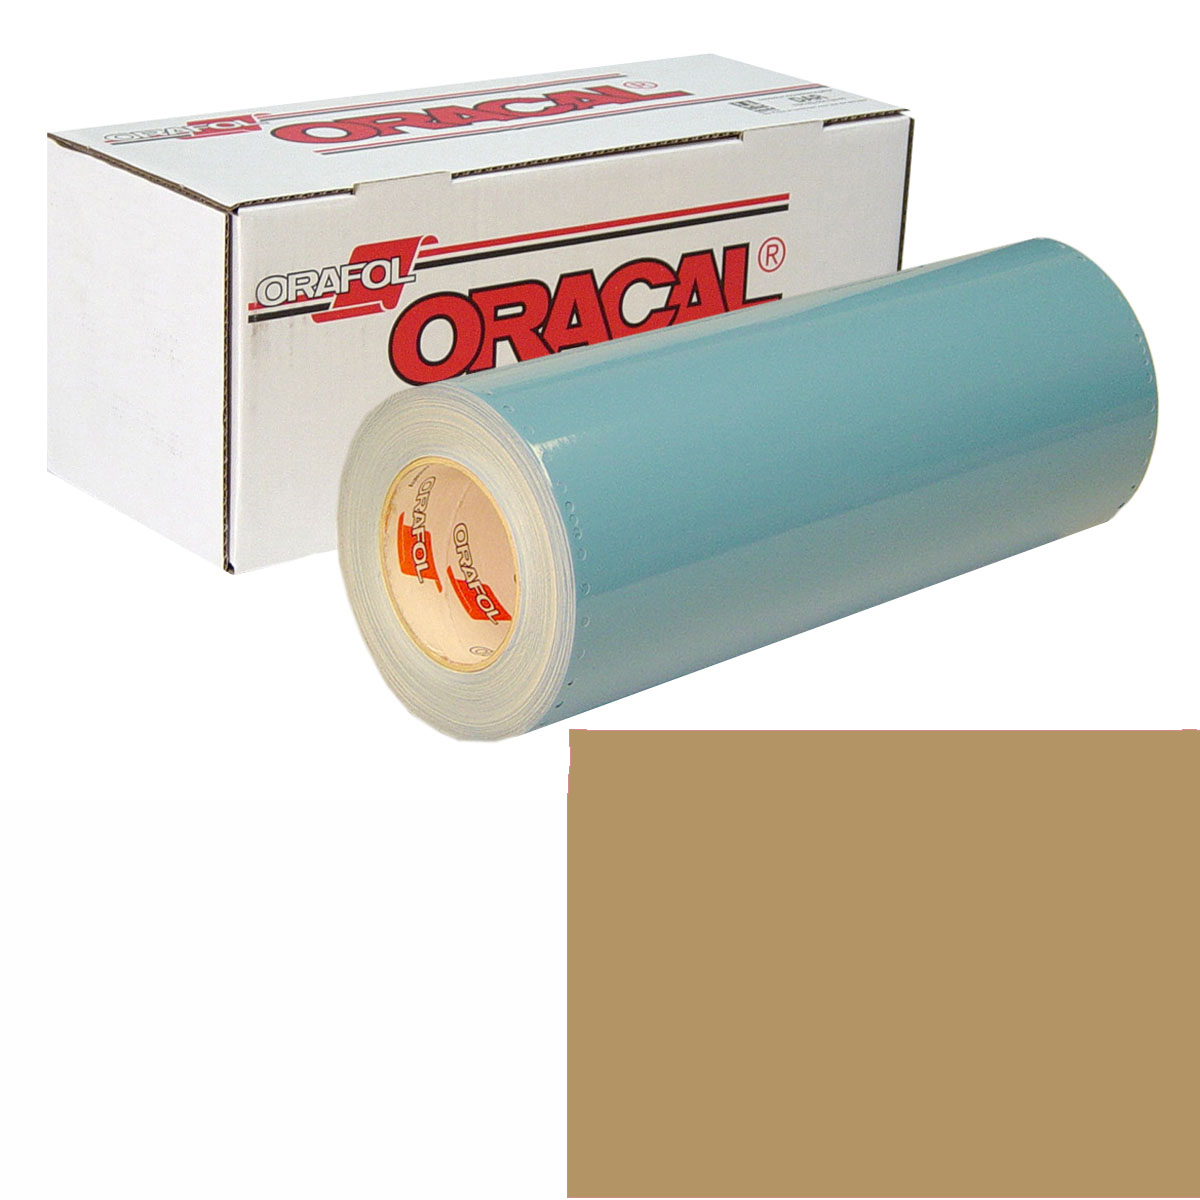 ORACAL 751 Unp 24In X 50Yd 930 Gold Metallic